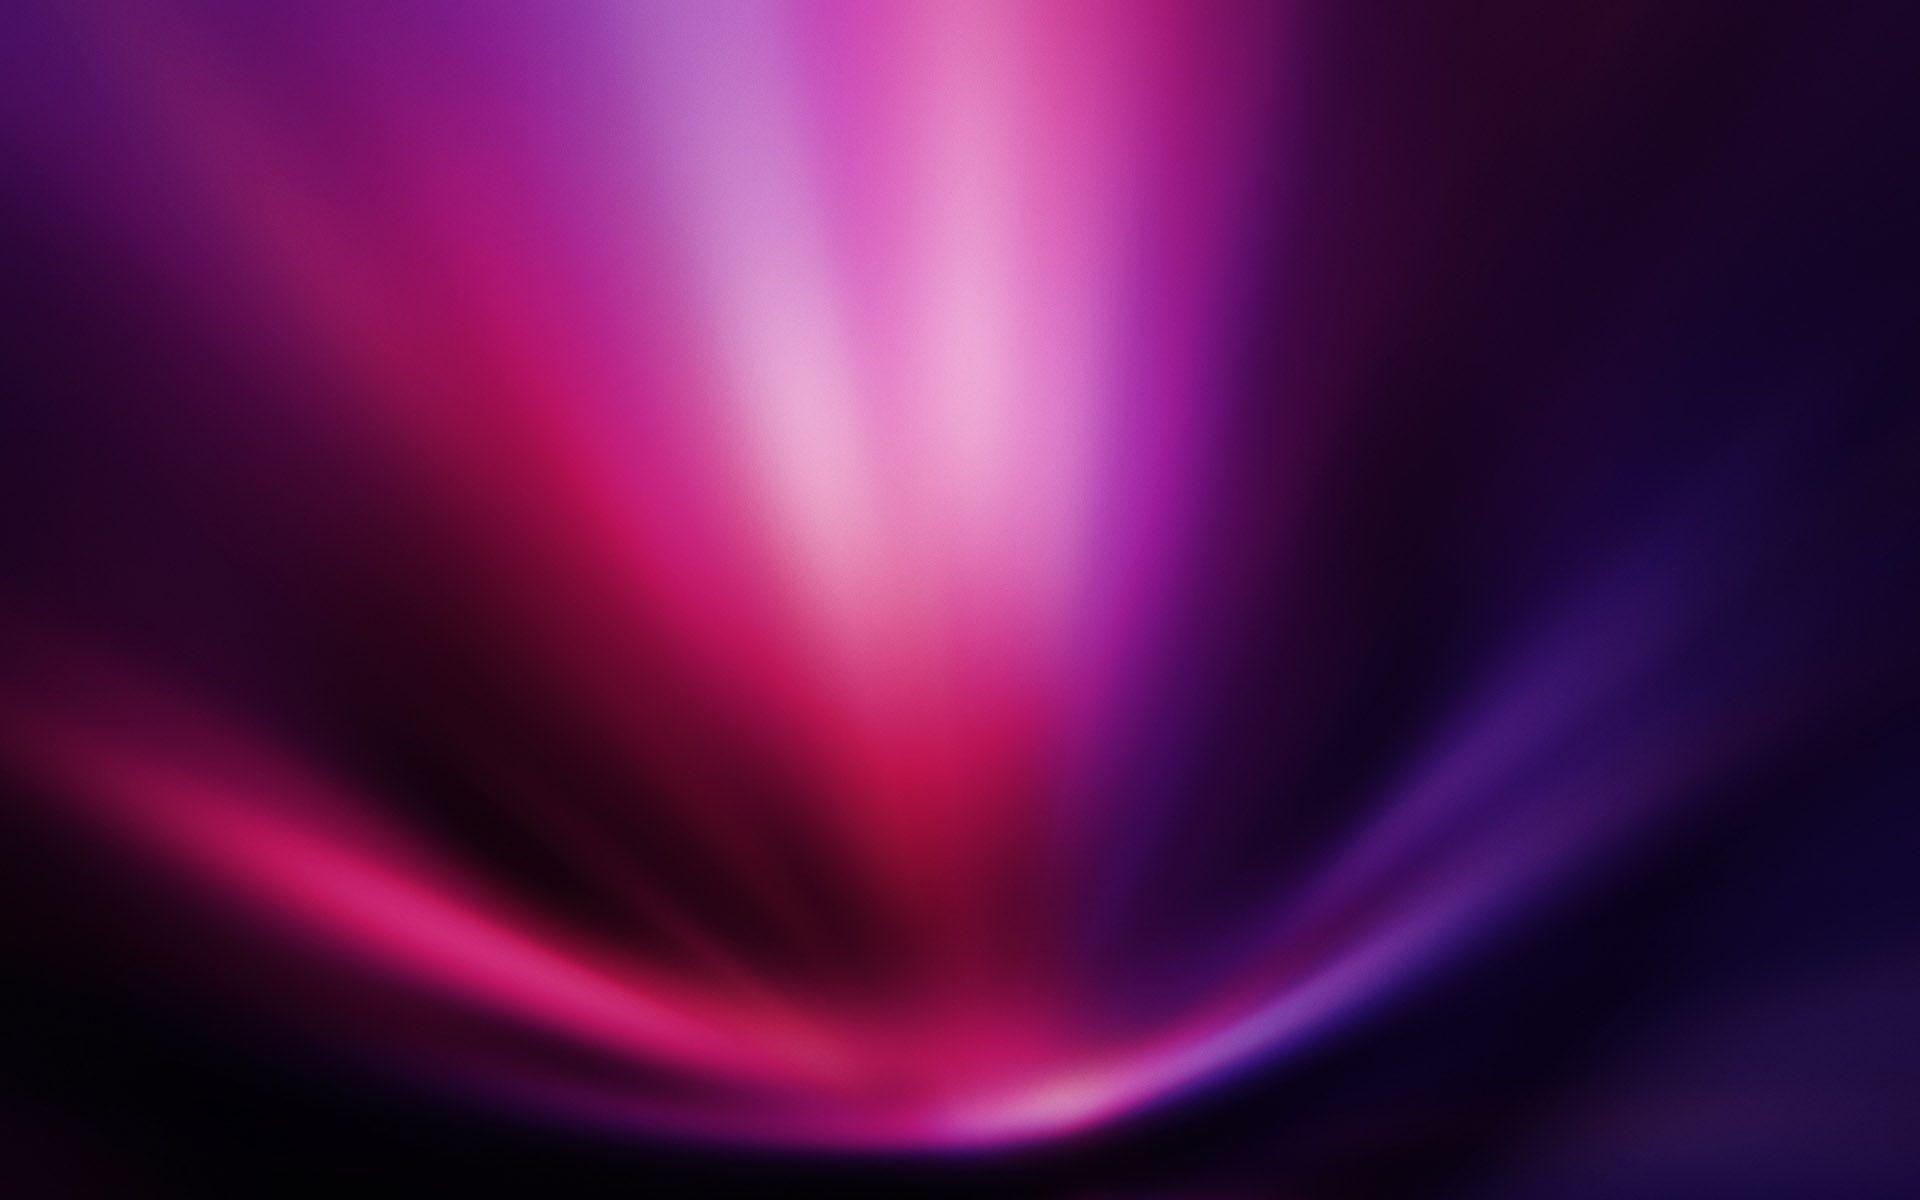 awesome abstract wallpapers pink - photo #2